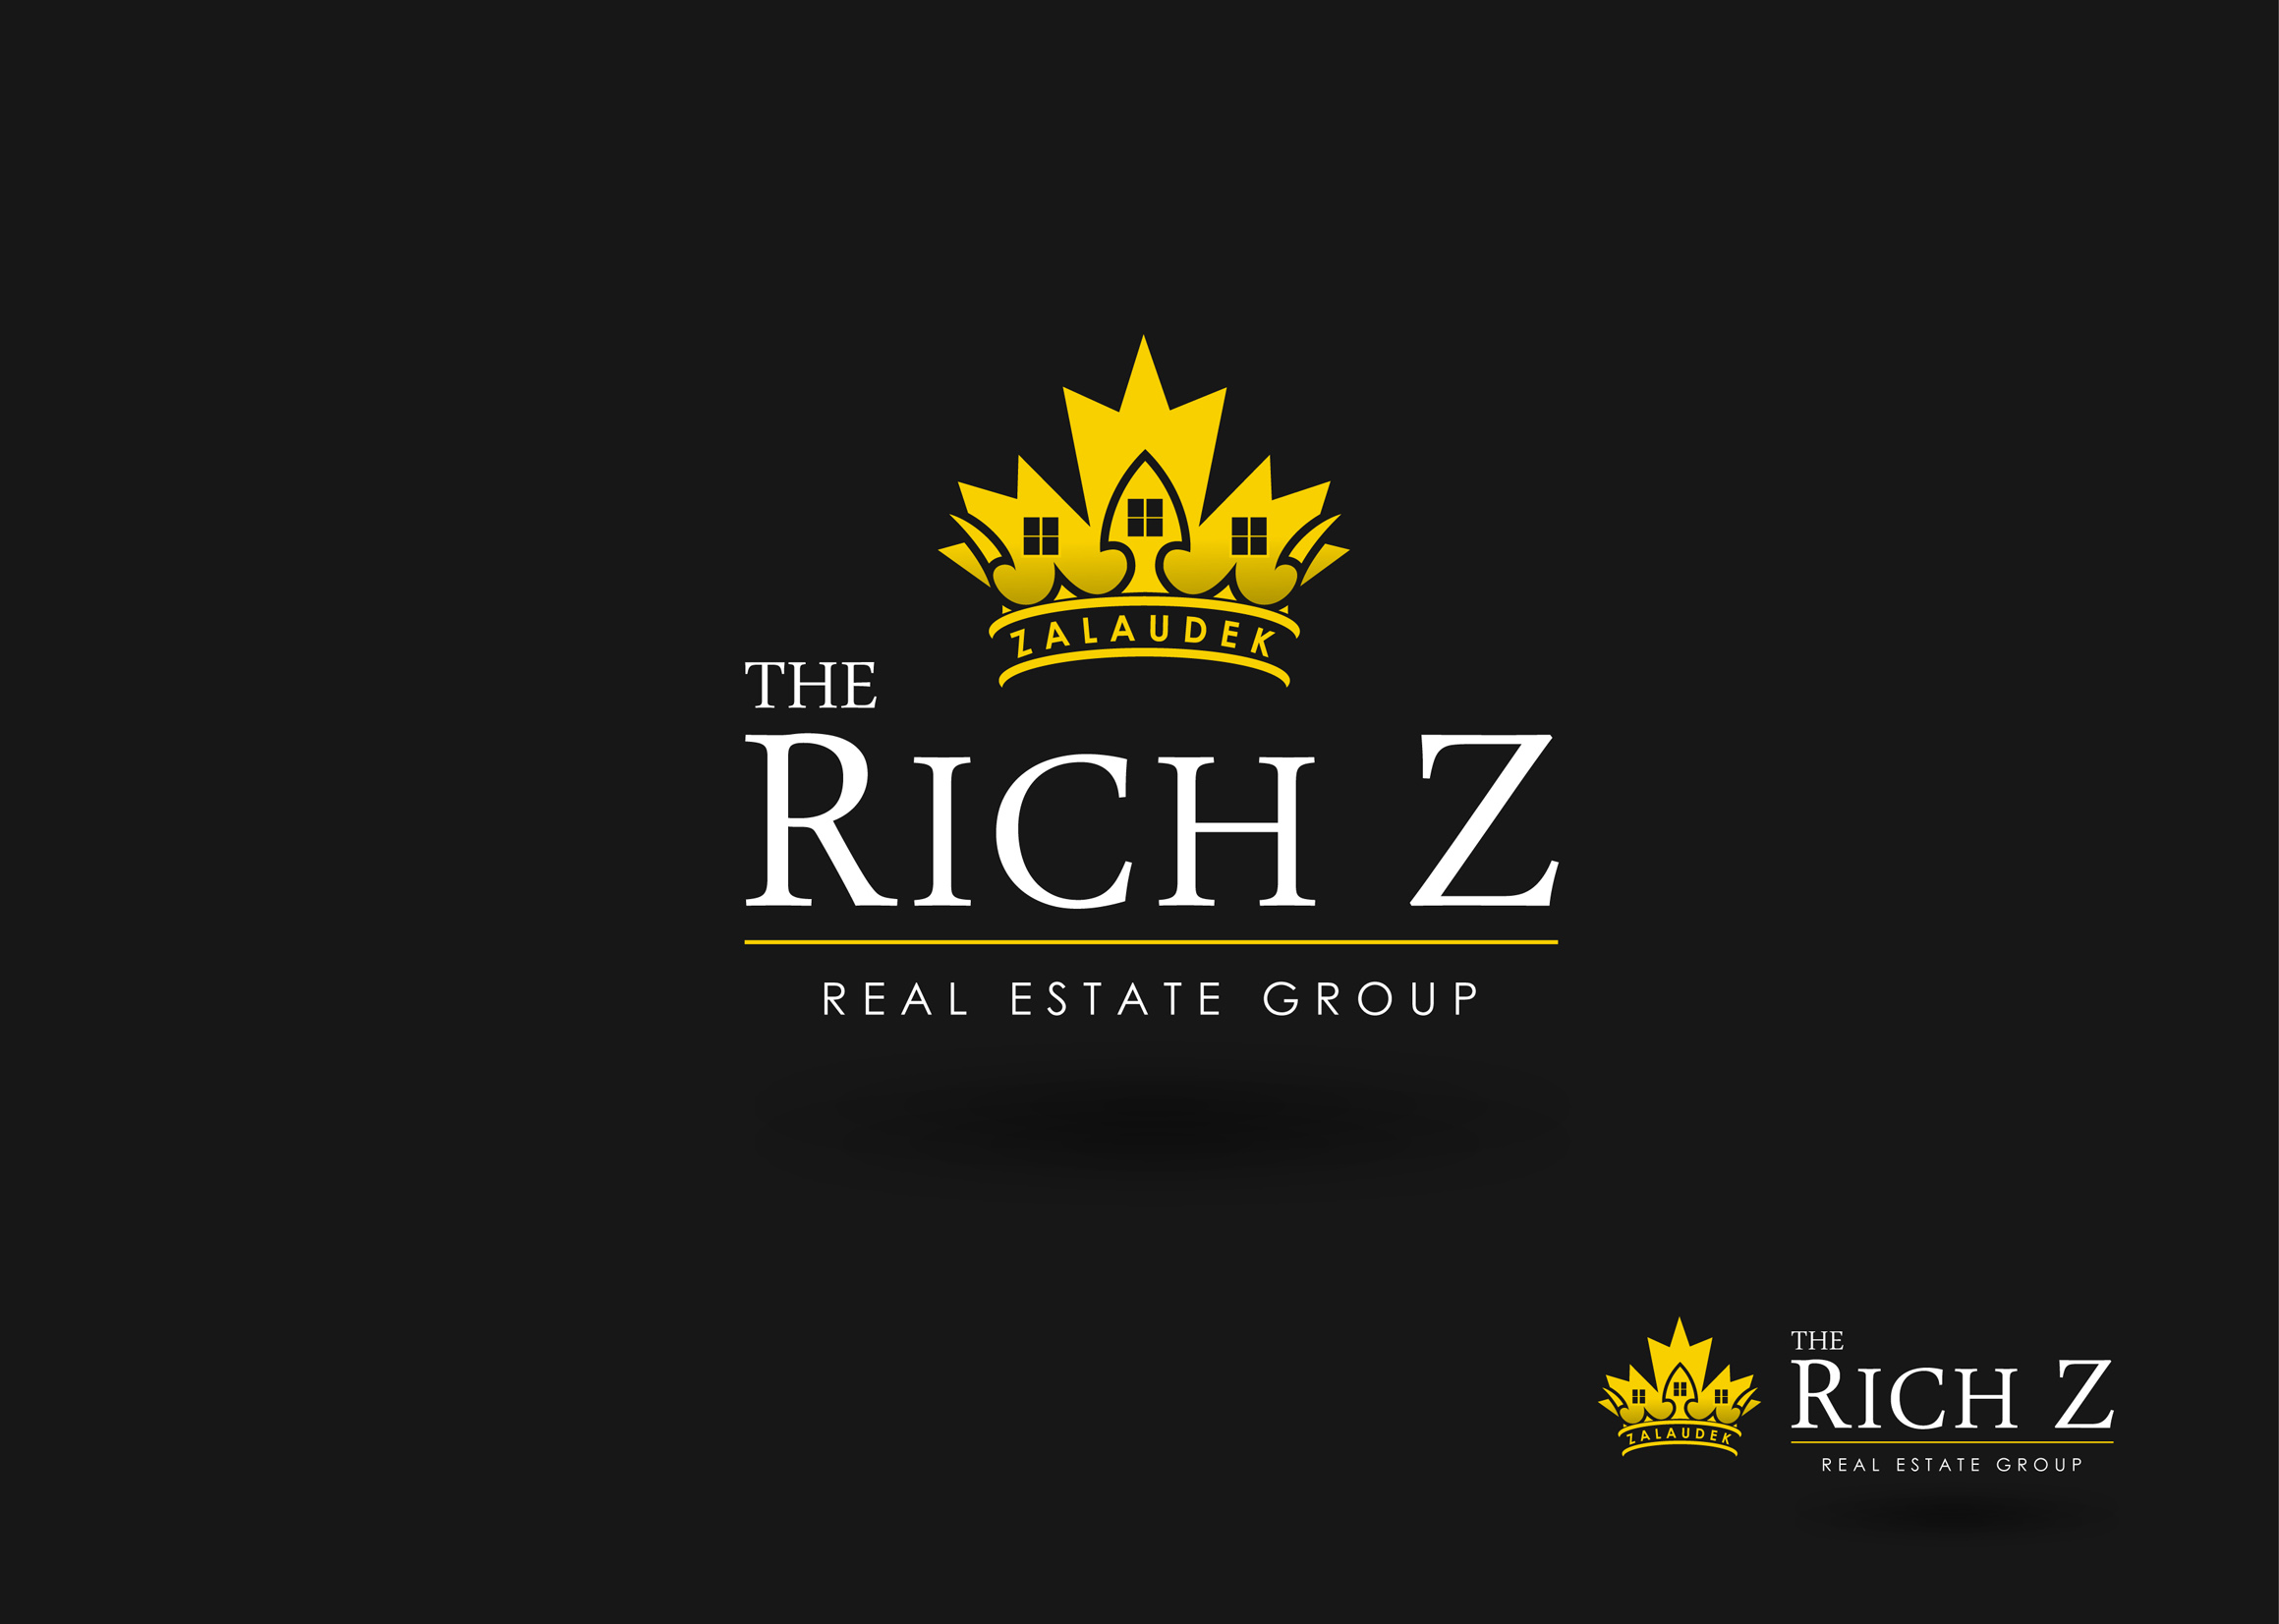 Logo Design by Mark Anthony Moreto Jordan - Entry No. 257 in the Logo Design Contest The Rich Z. Real Estate Group Logo Design.